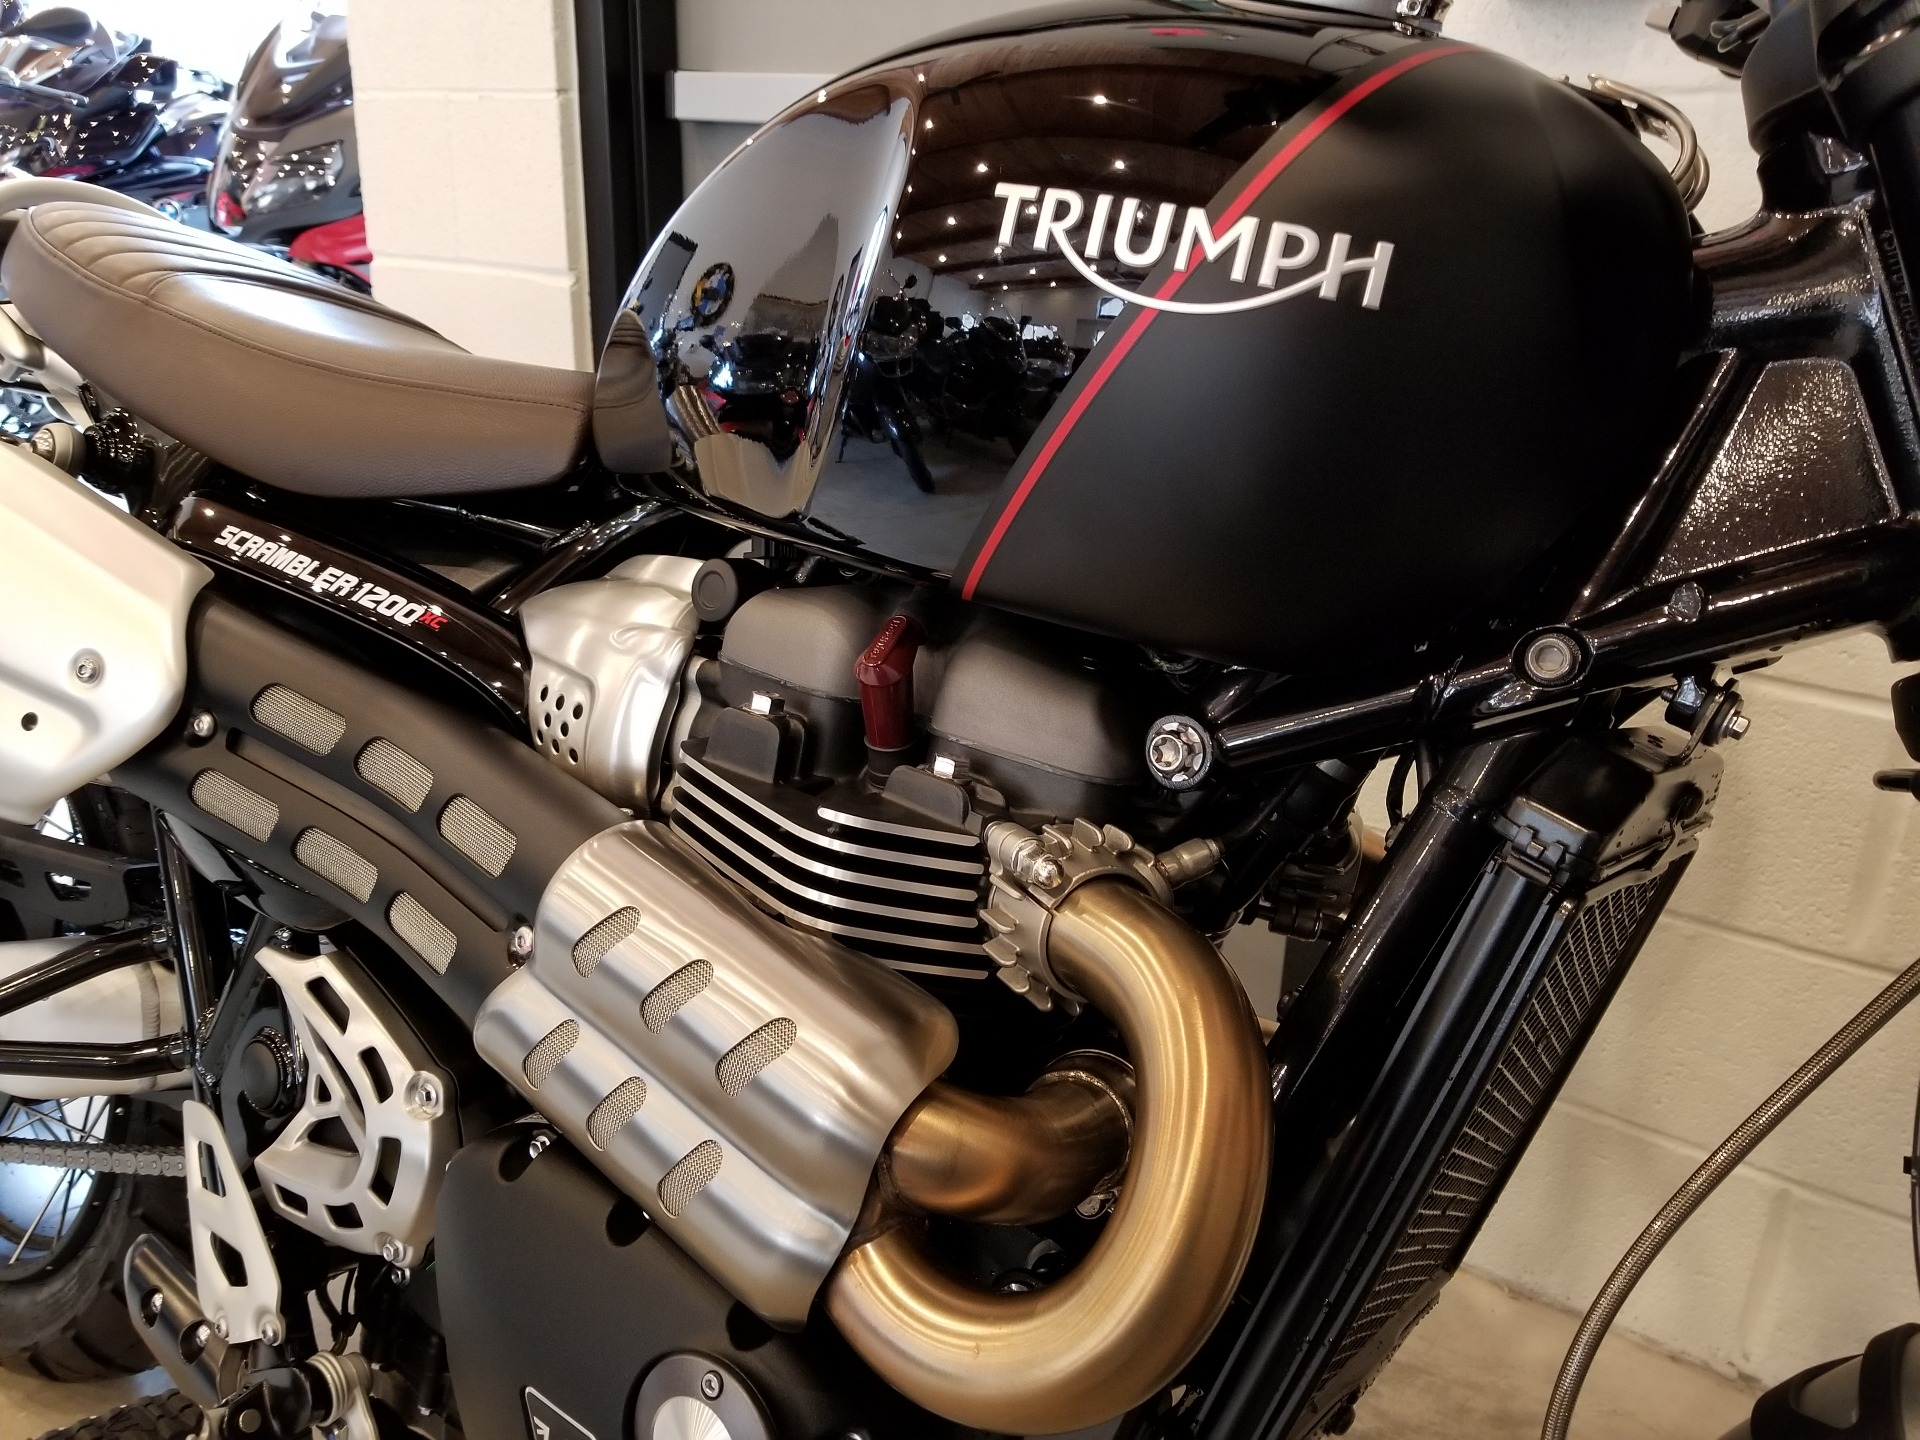 2019 Triumph Scrambler 1200 XC in Port Clinton, Pennsylvania - Photo 7